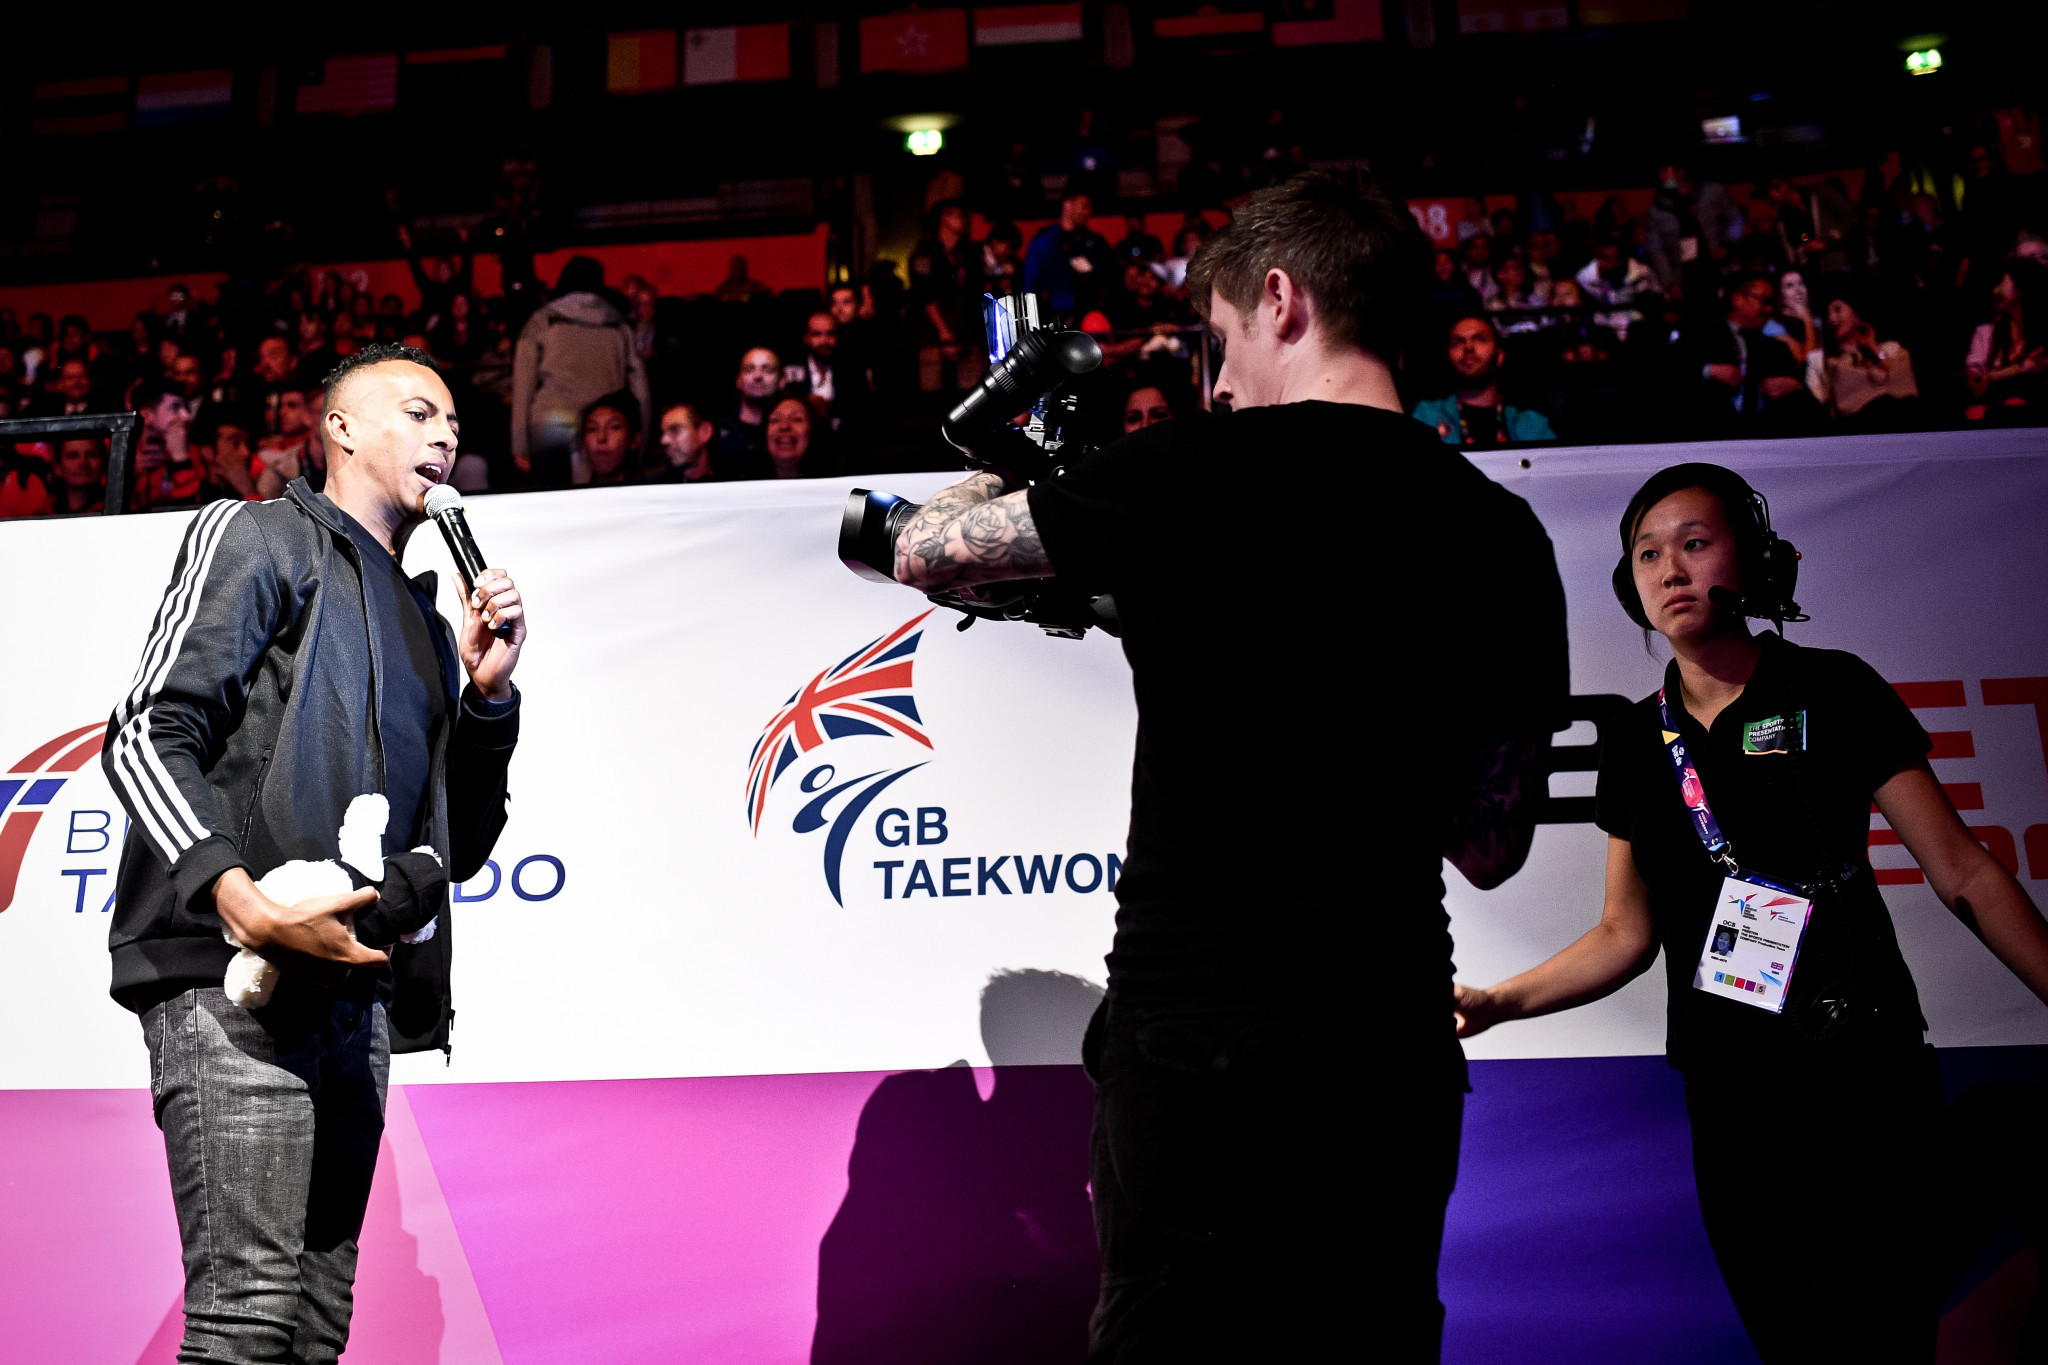 The atmosphere at Manchester Arena was amplified by the presenters throughout the day ©World Taekwondo